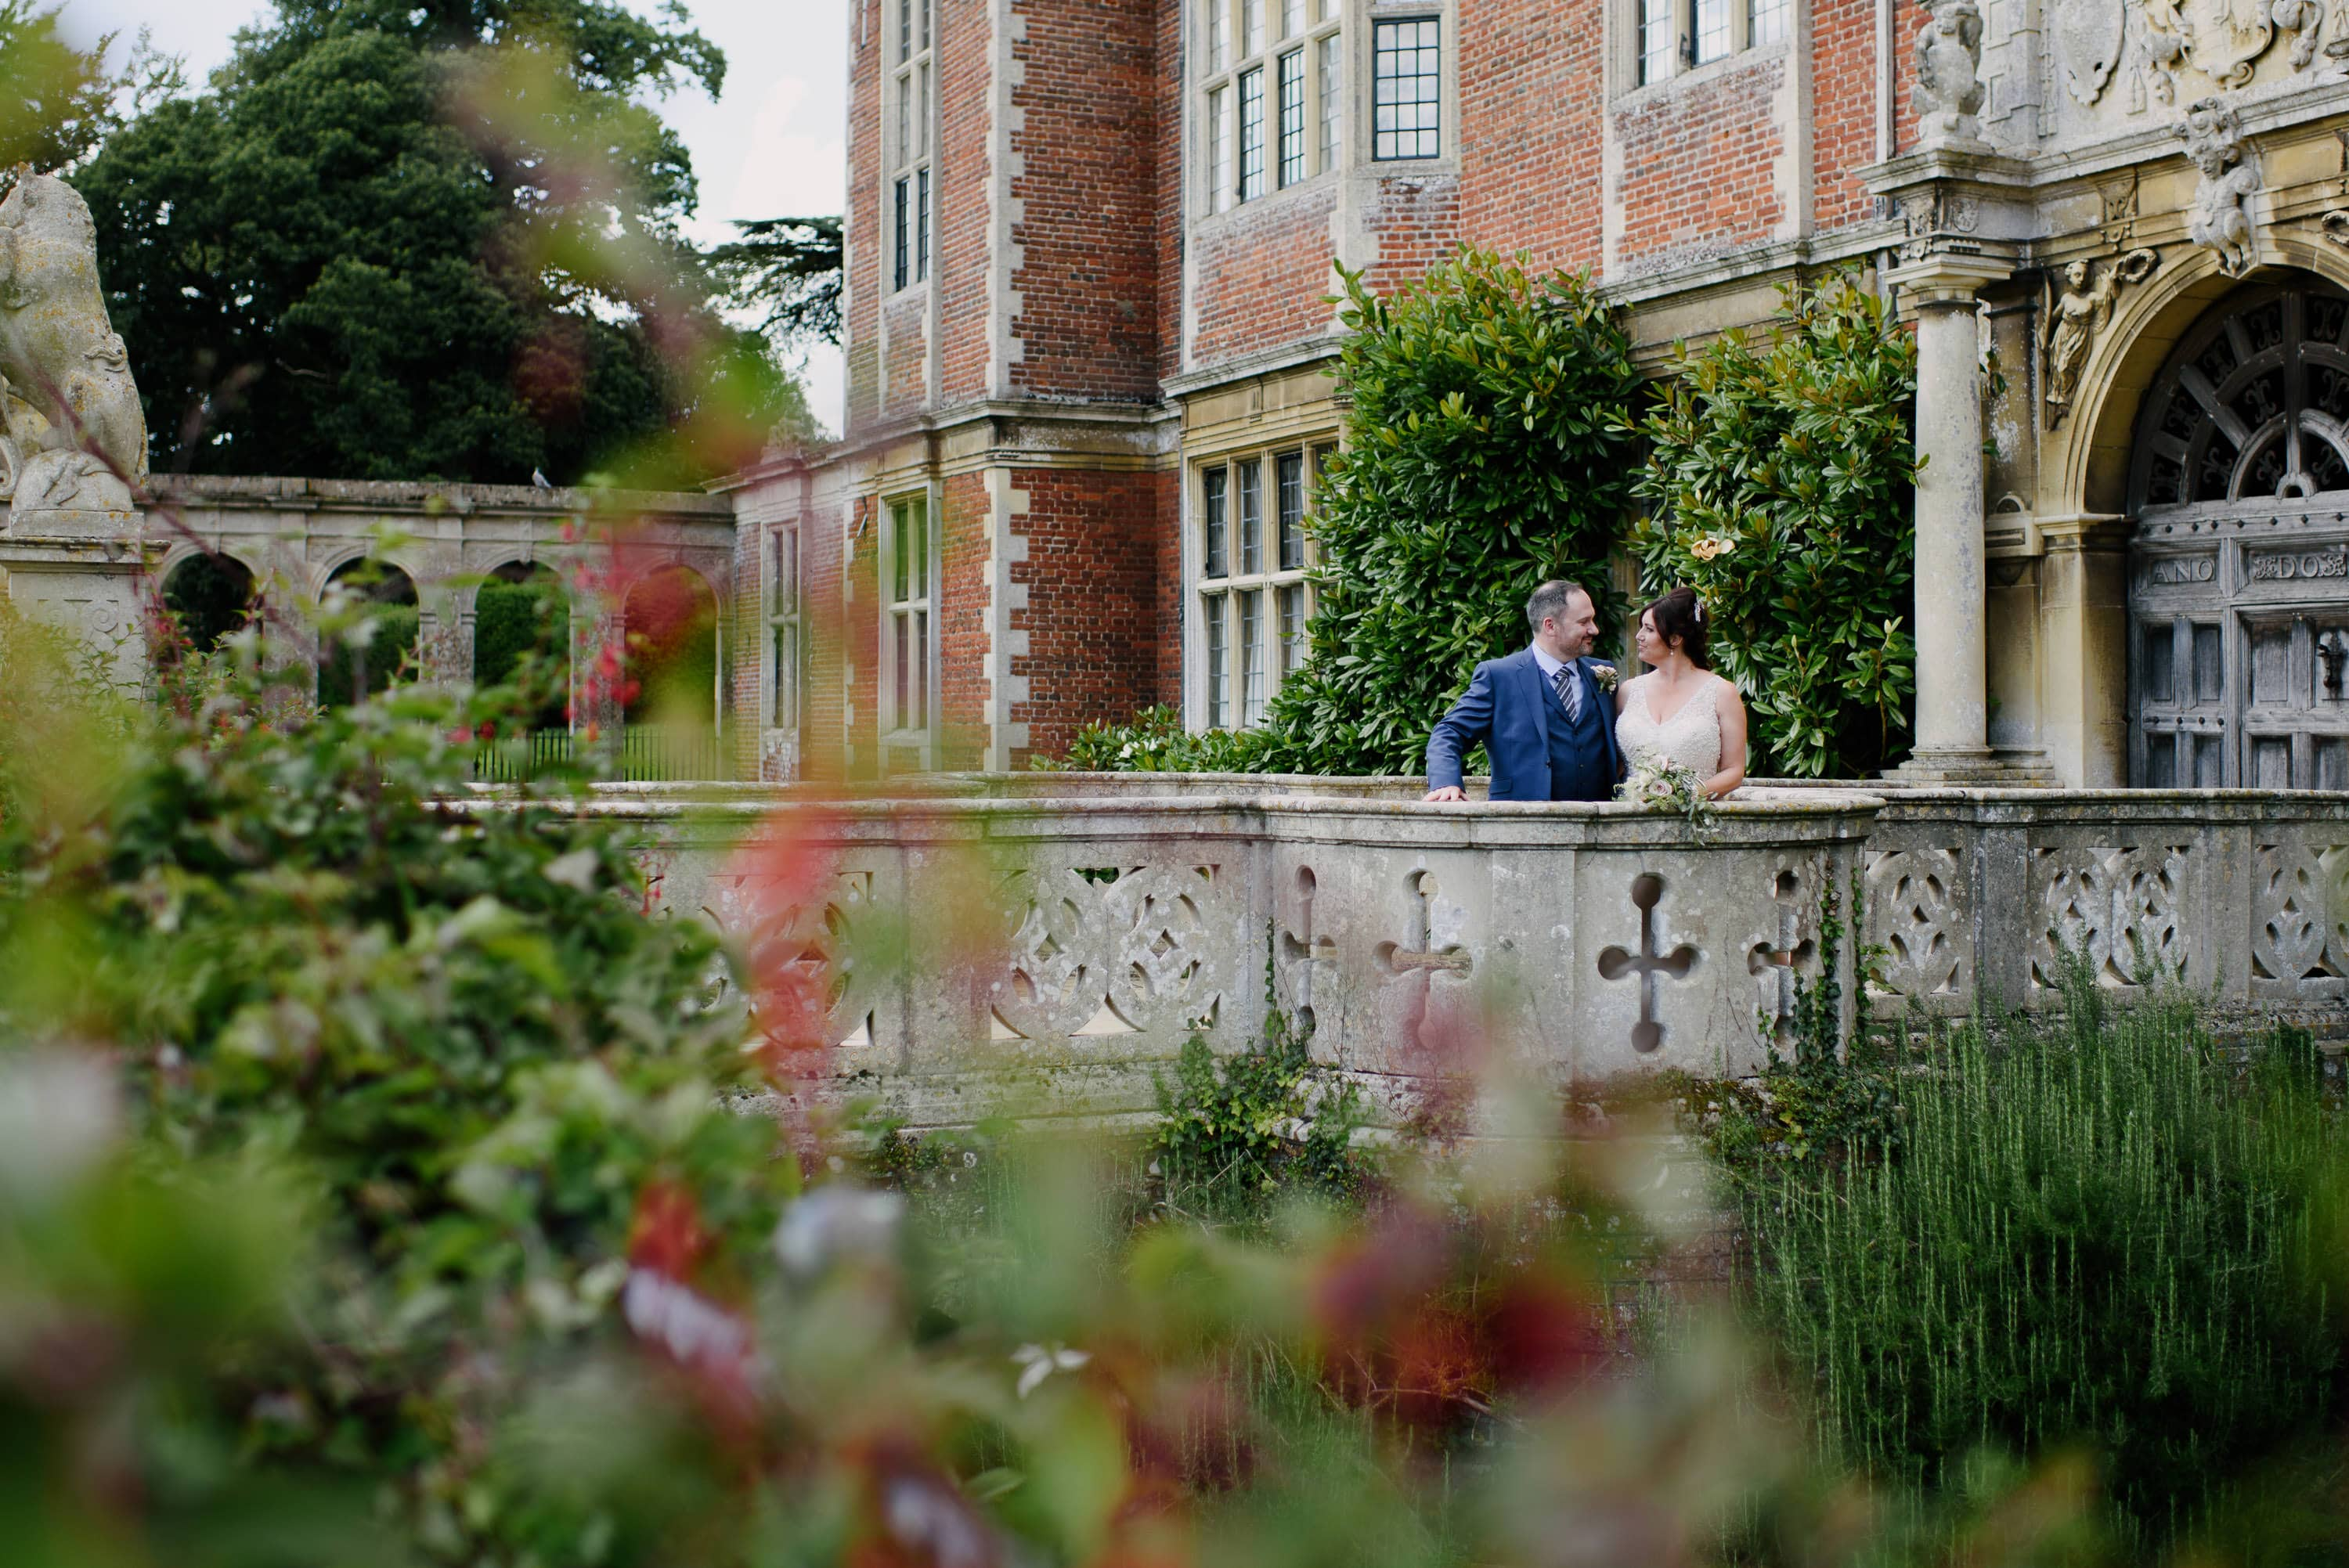 Suzy & Mike - Blickling Hall - Great British Proms - Slideshow 9